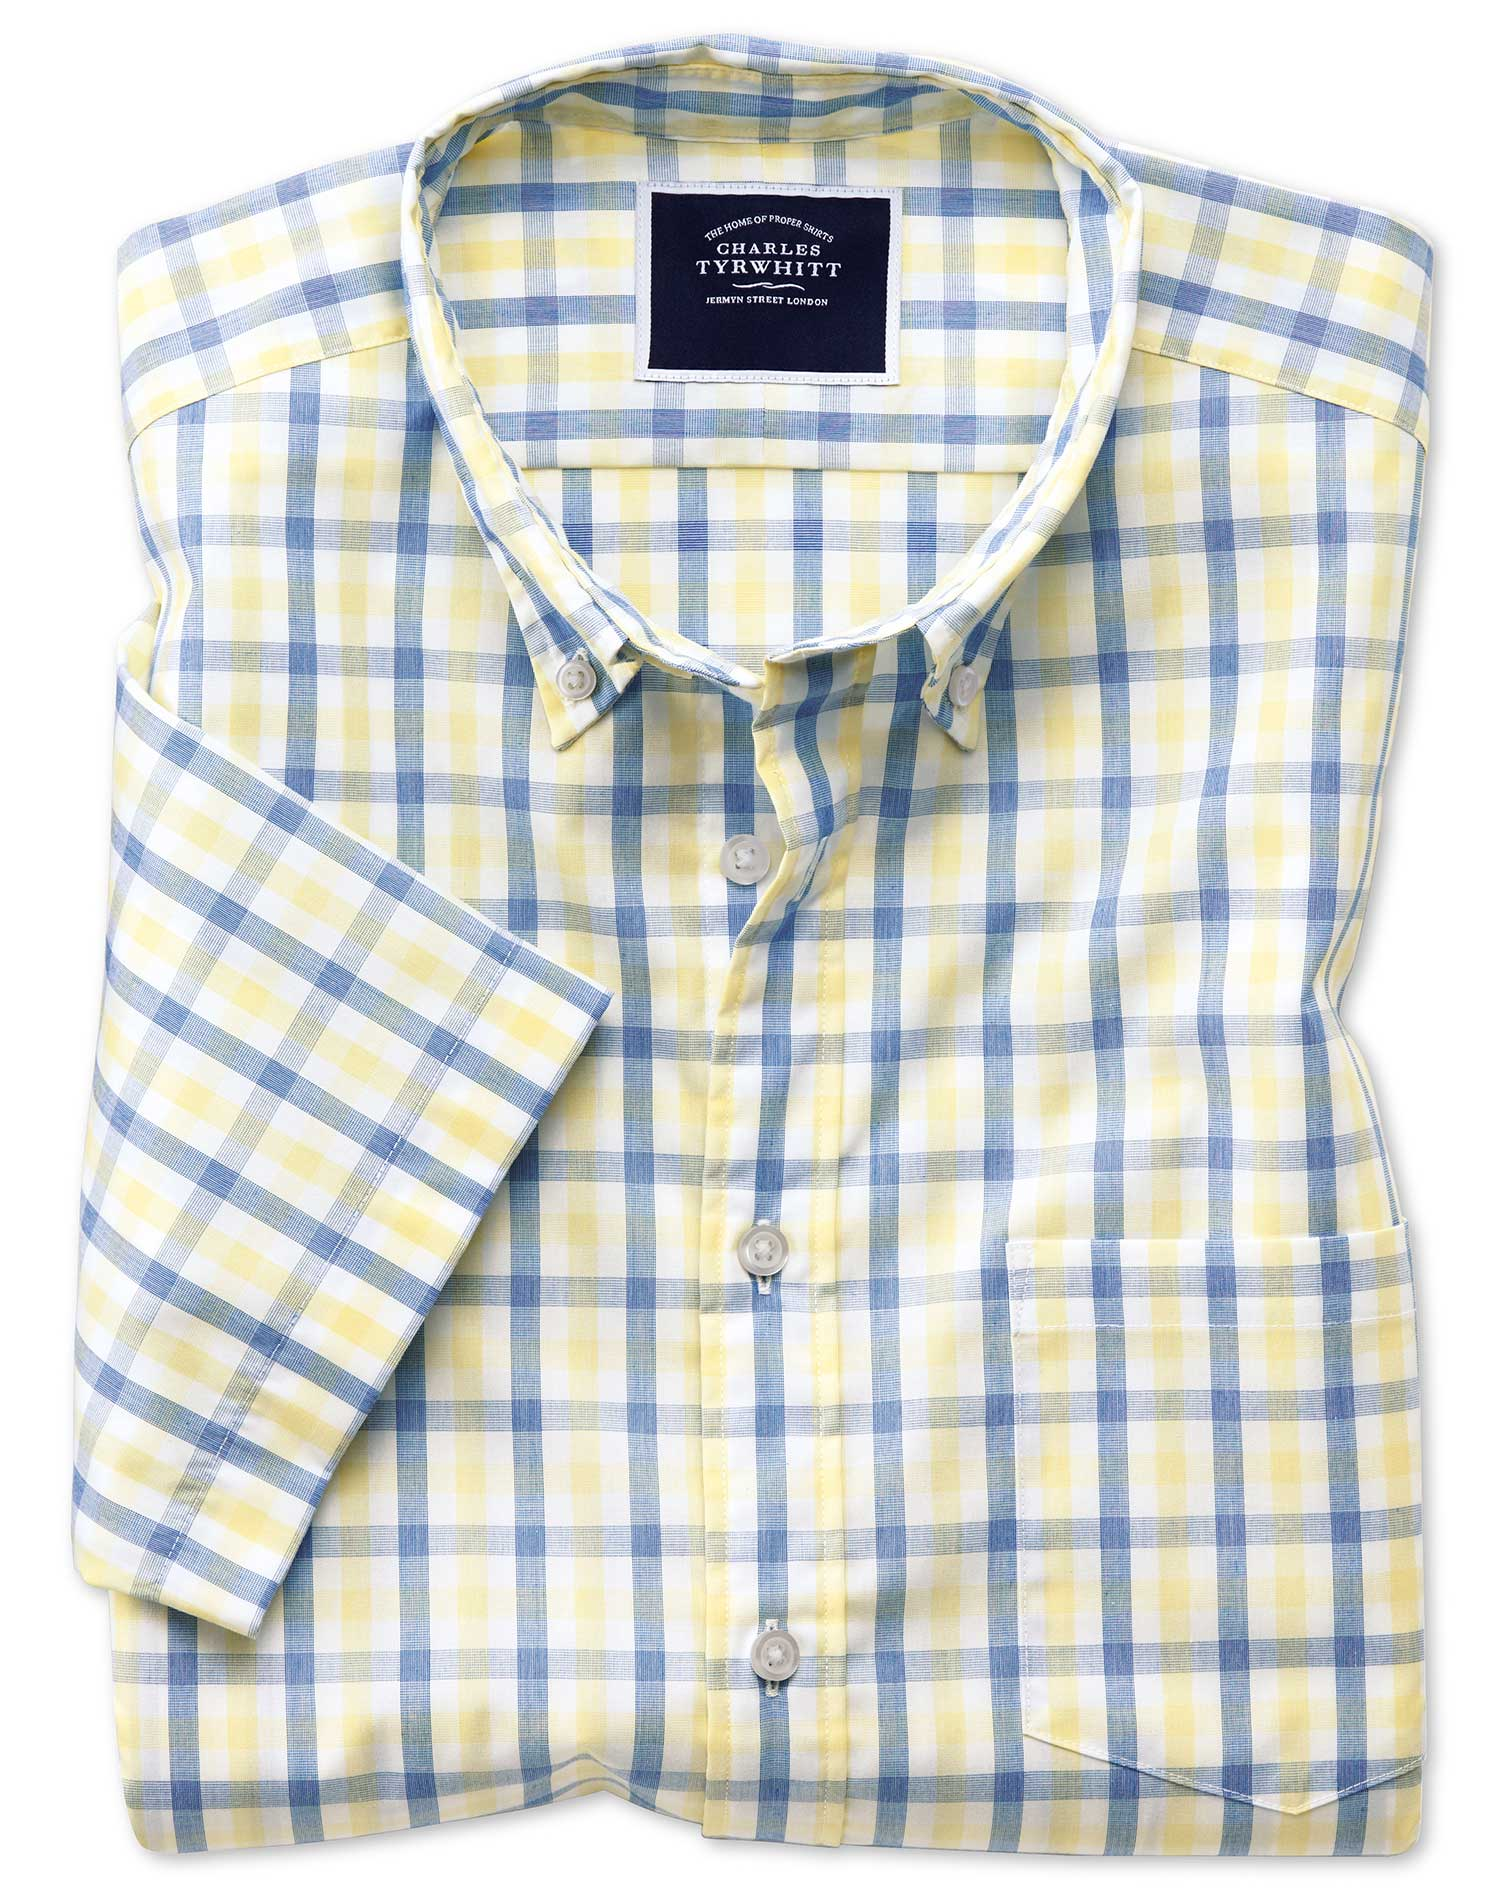 Classic Fit Yellow and Blue Short Sleeve Gingham Soft Washed Non-Iron Tyrwhitt Cool Cotton Shirt Sin